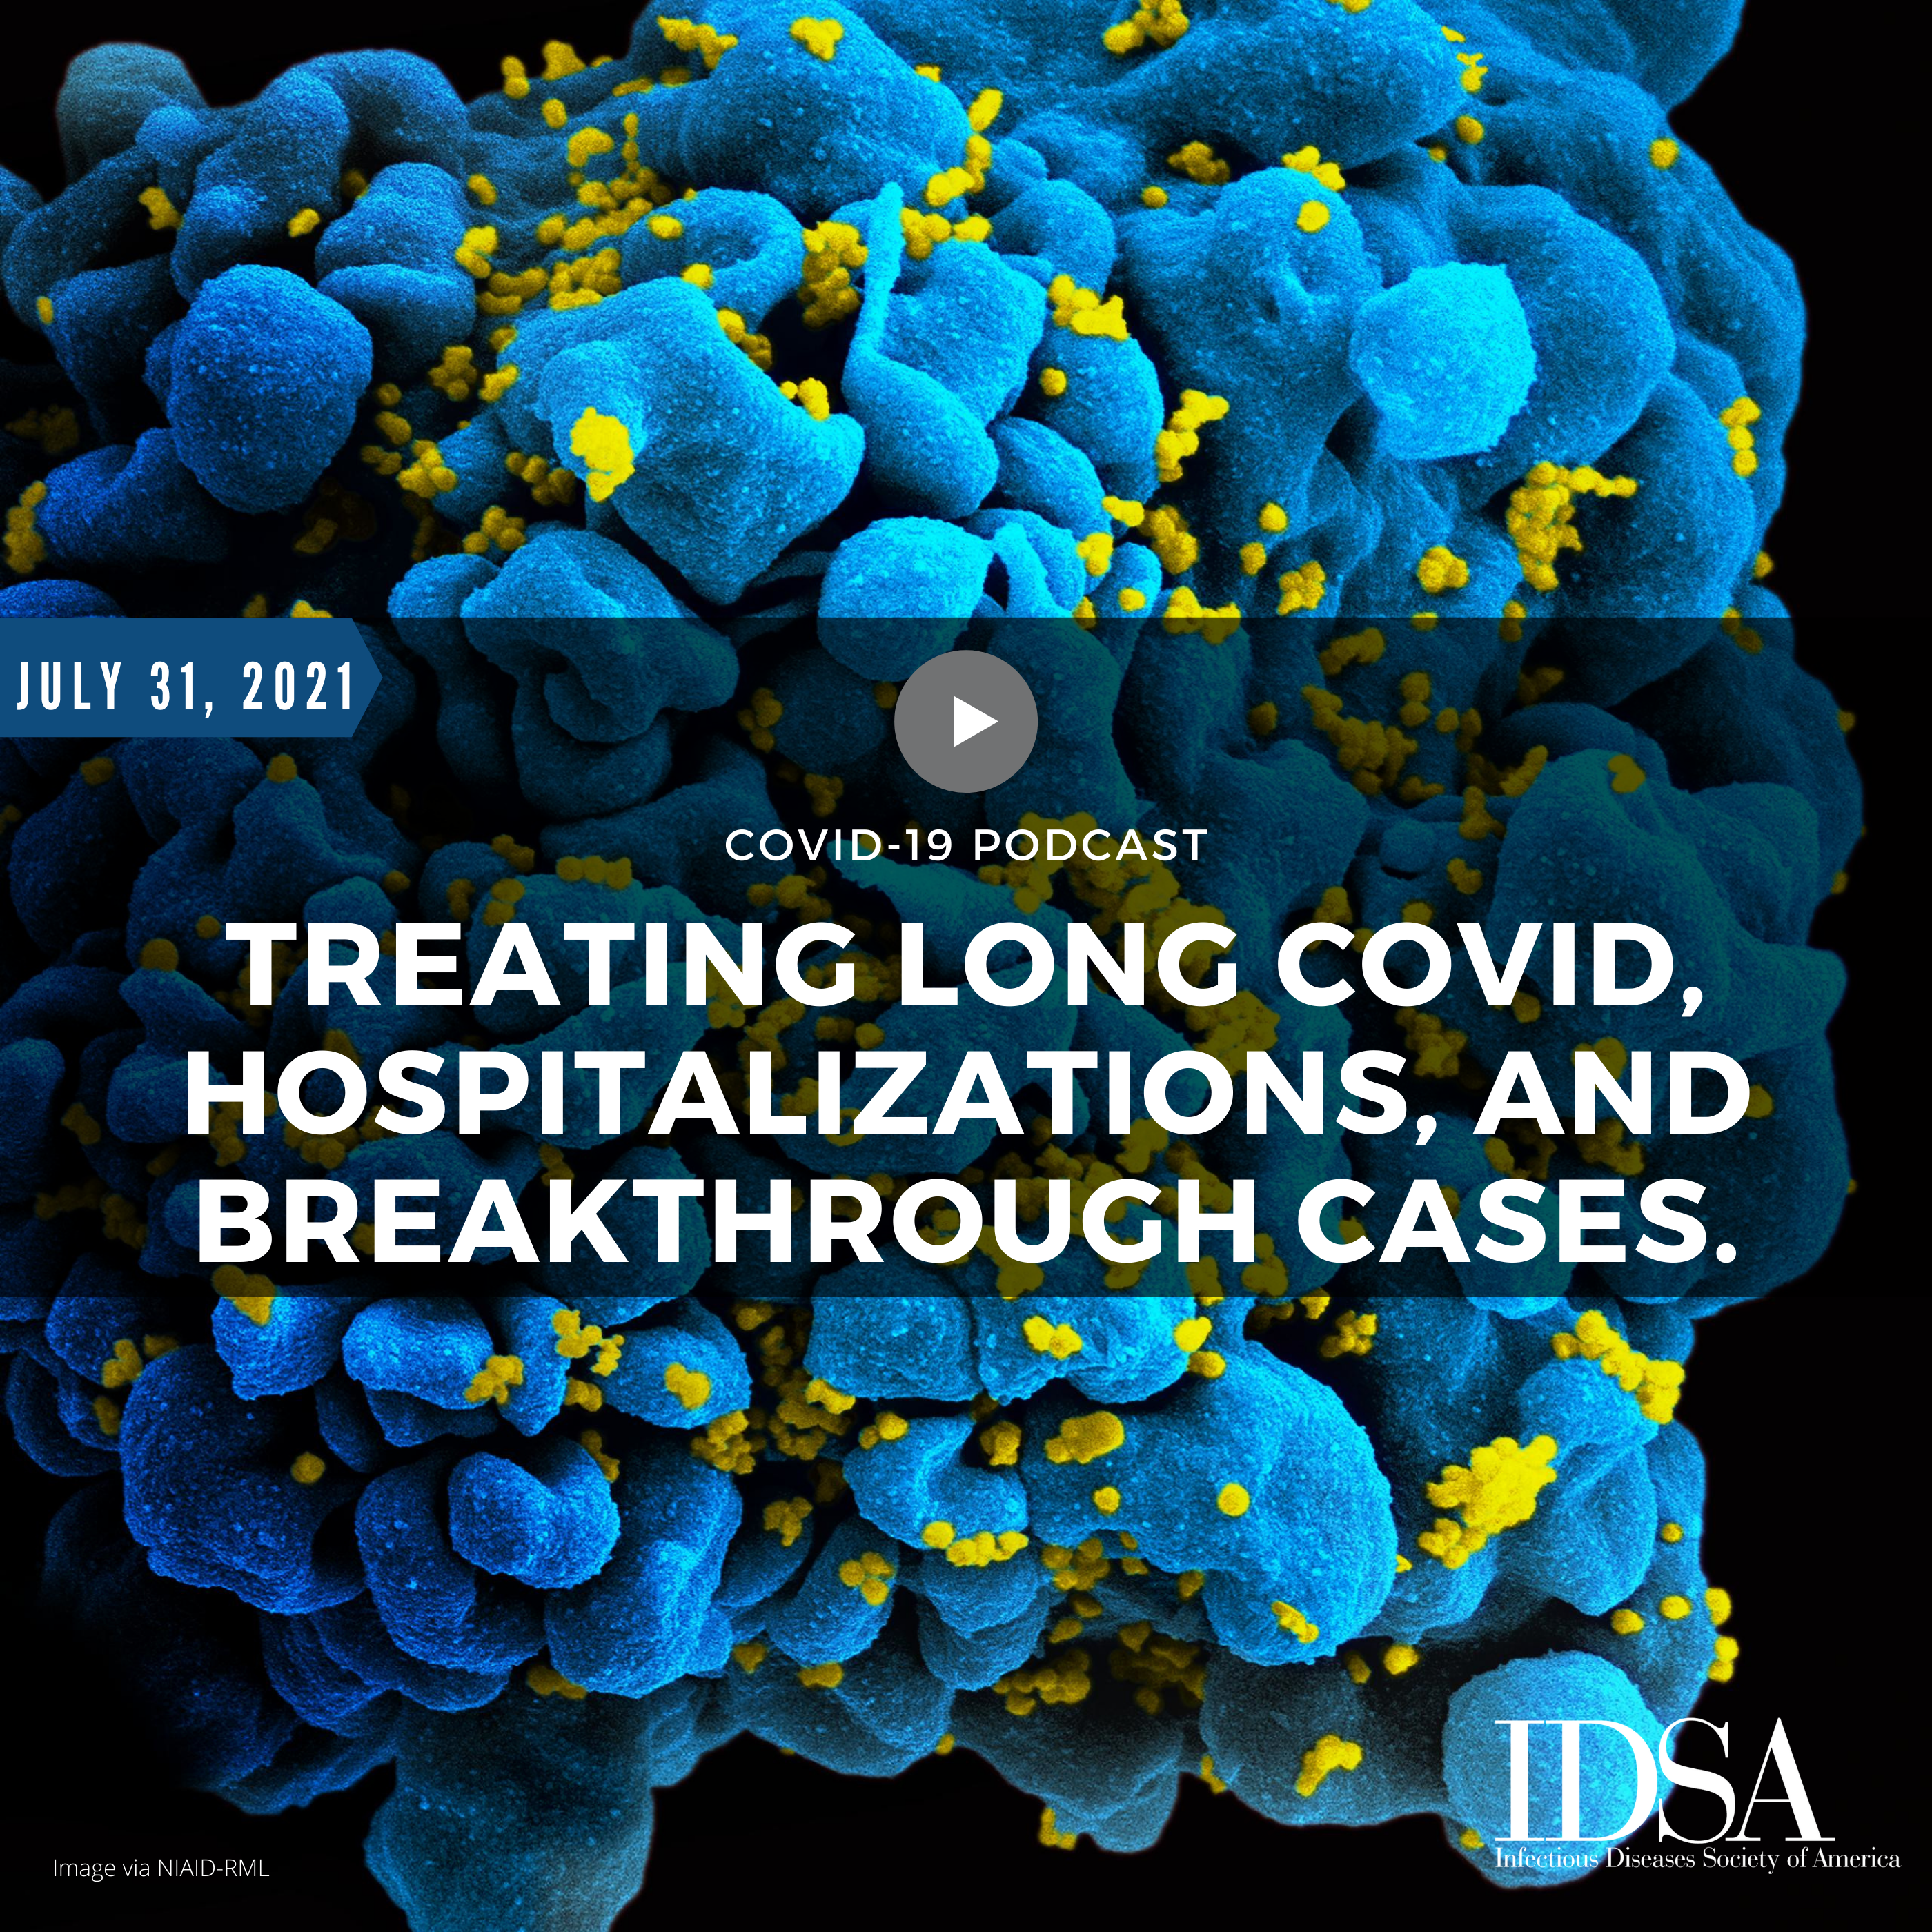 Treating Long Covid, Hospitalizations, and Breakthrough Cases (July 31, 2021)